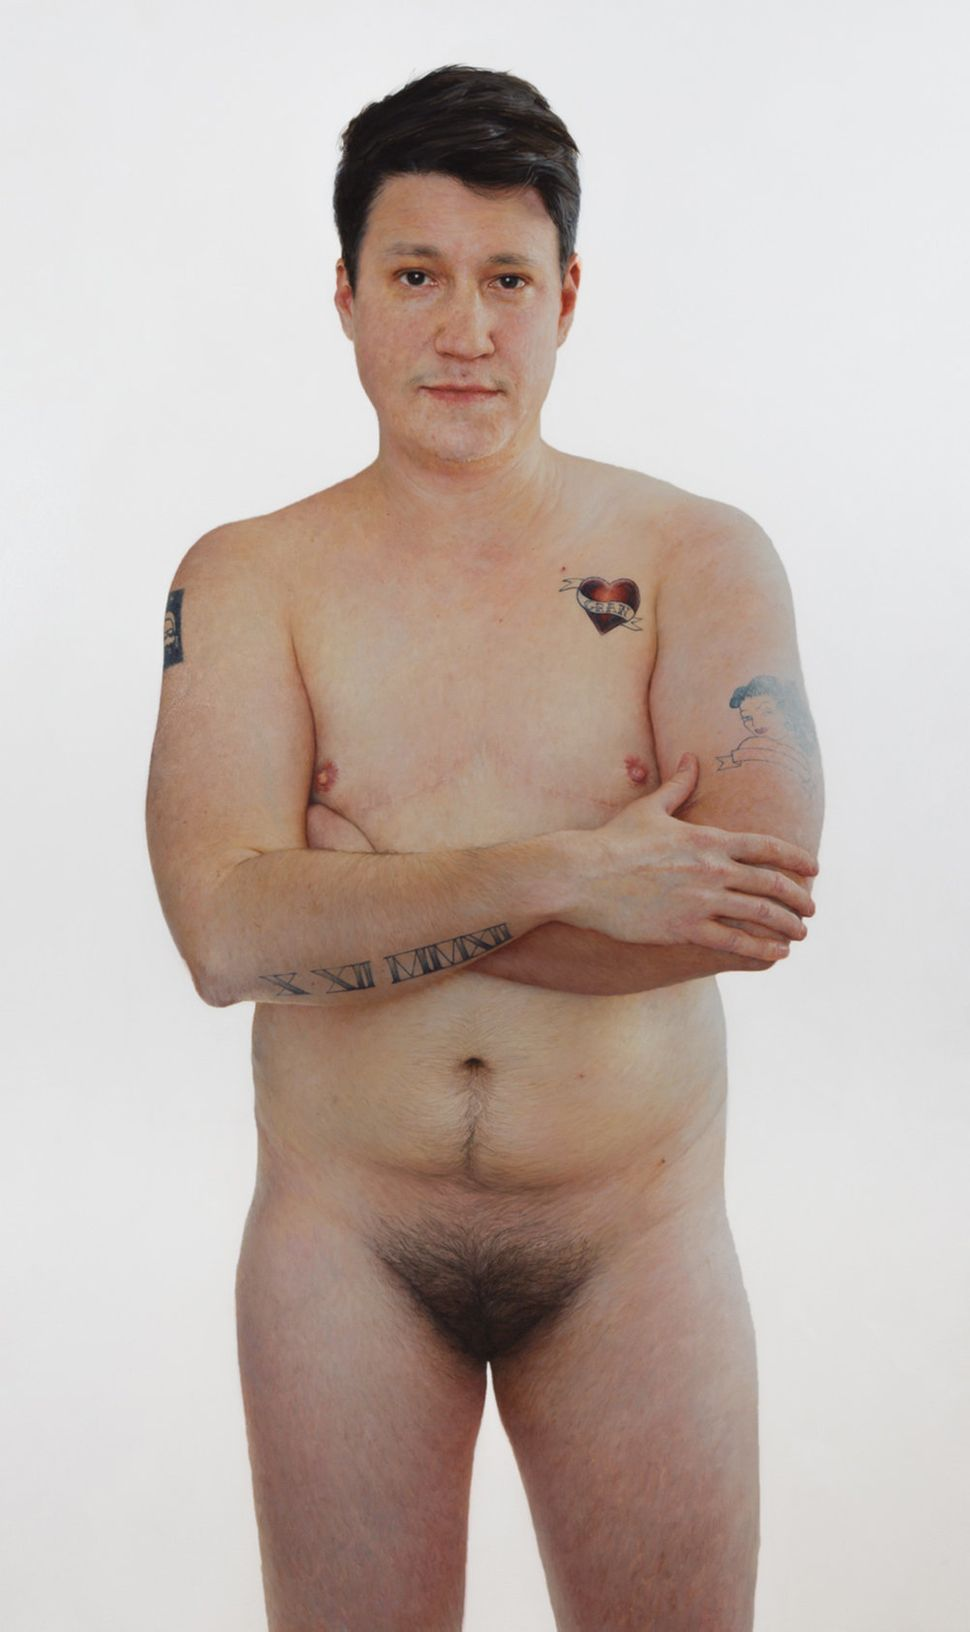 Unflinching Nude Portraits Explore The True Spectrum Of Gender Huffpost